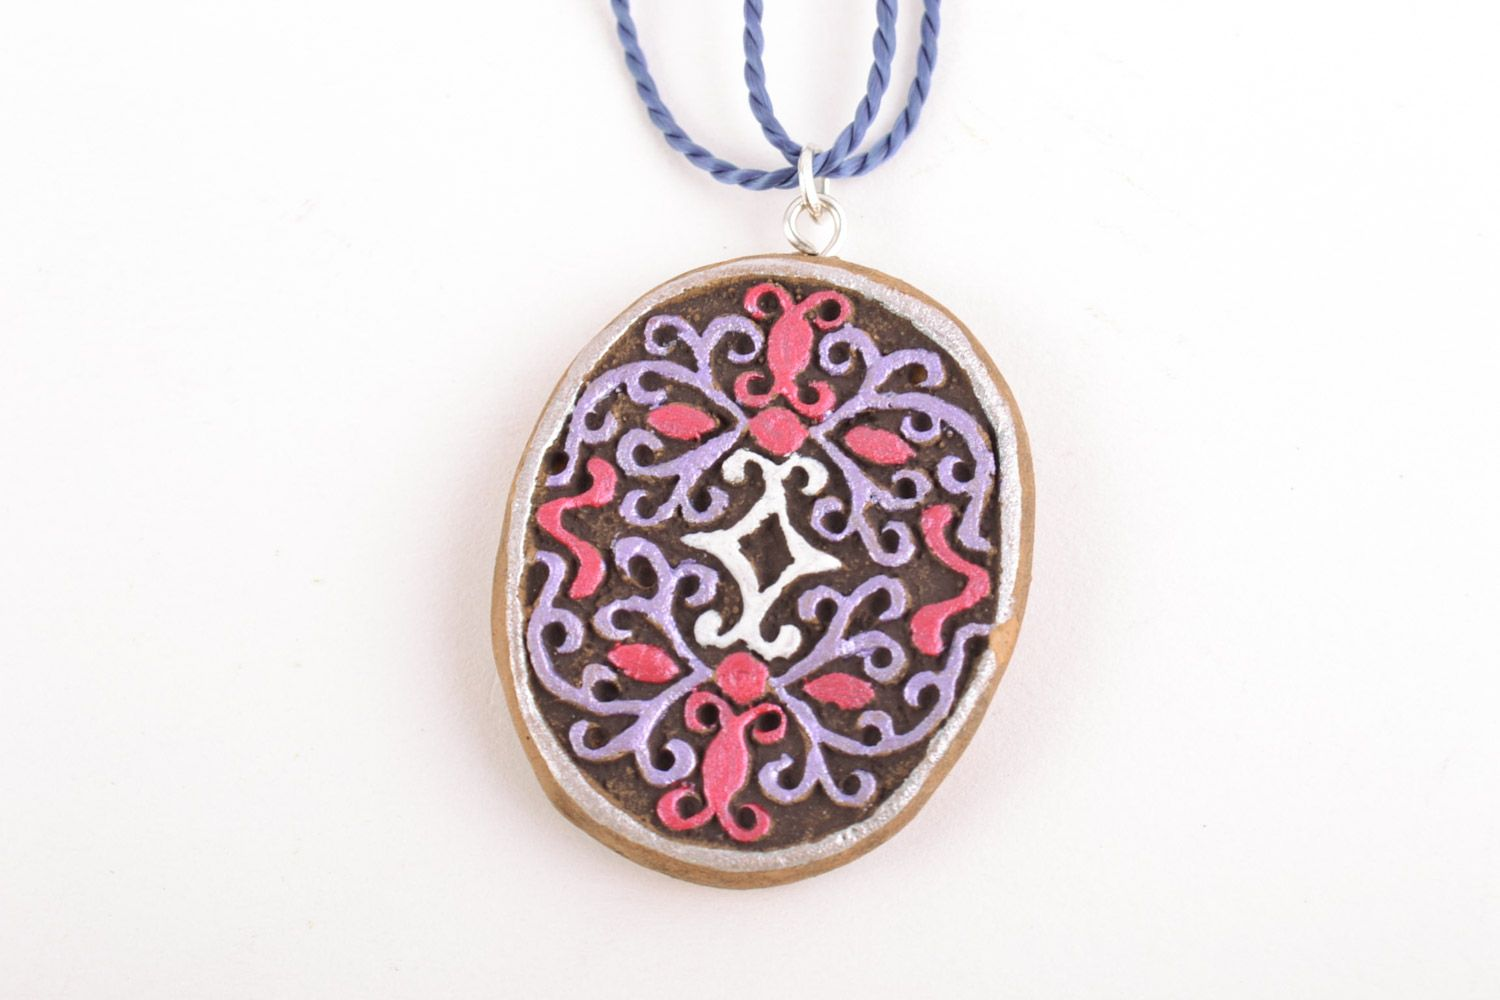 Women's homemade painted clay neck pendant of oval shape photo 3